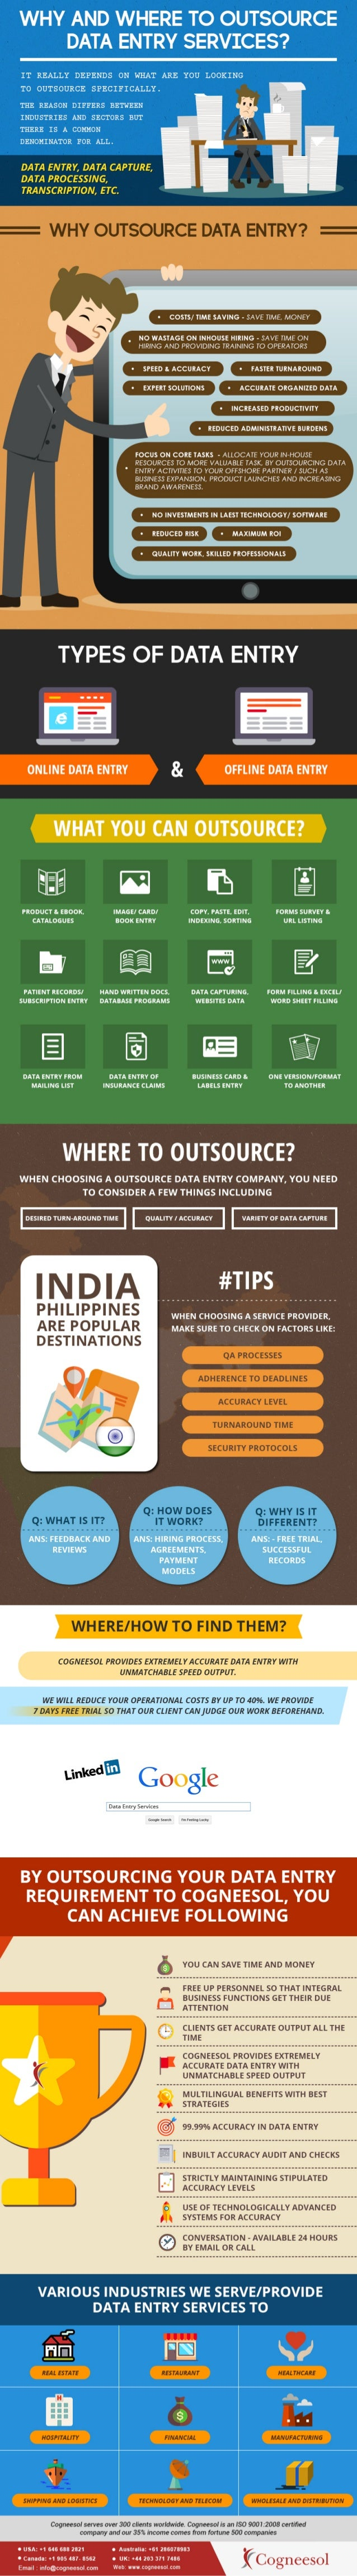 Why and Where to Outsource Data Entry Services? - Infographic